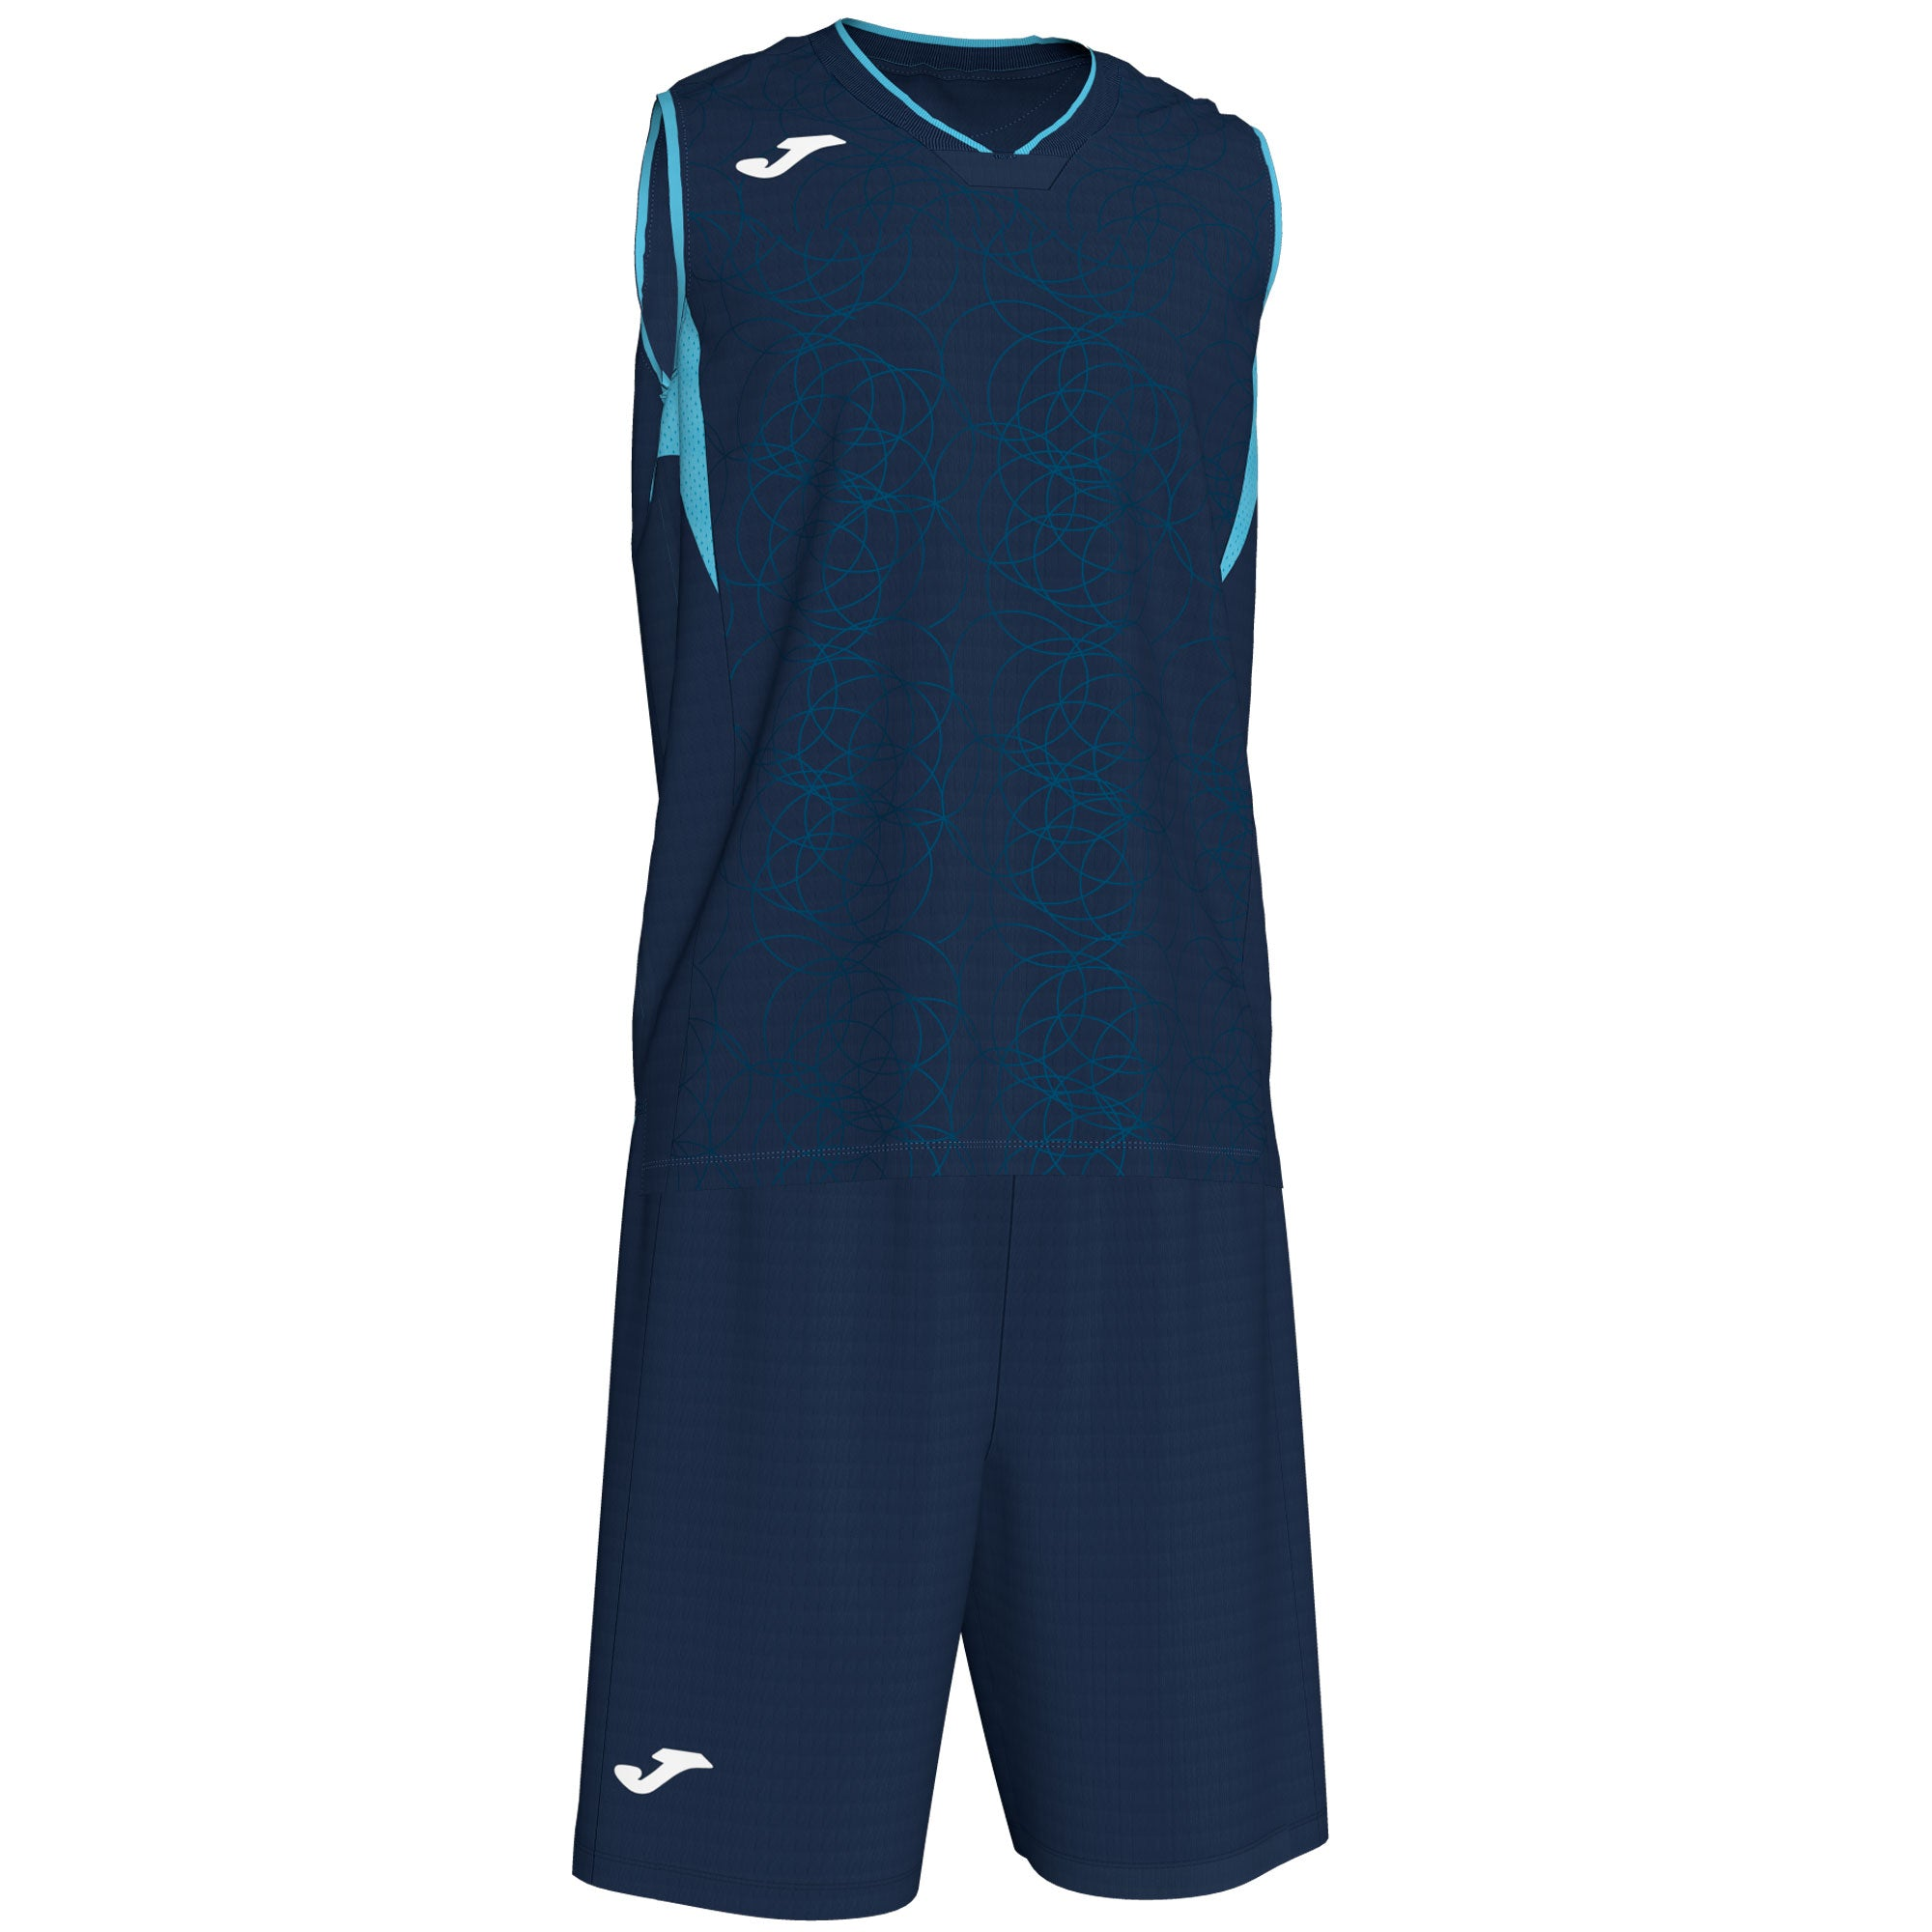 Teamwear - Joma Campus Kit - Dark Navy/Turquoise Flour - JO-101373-346